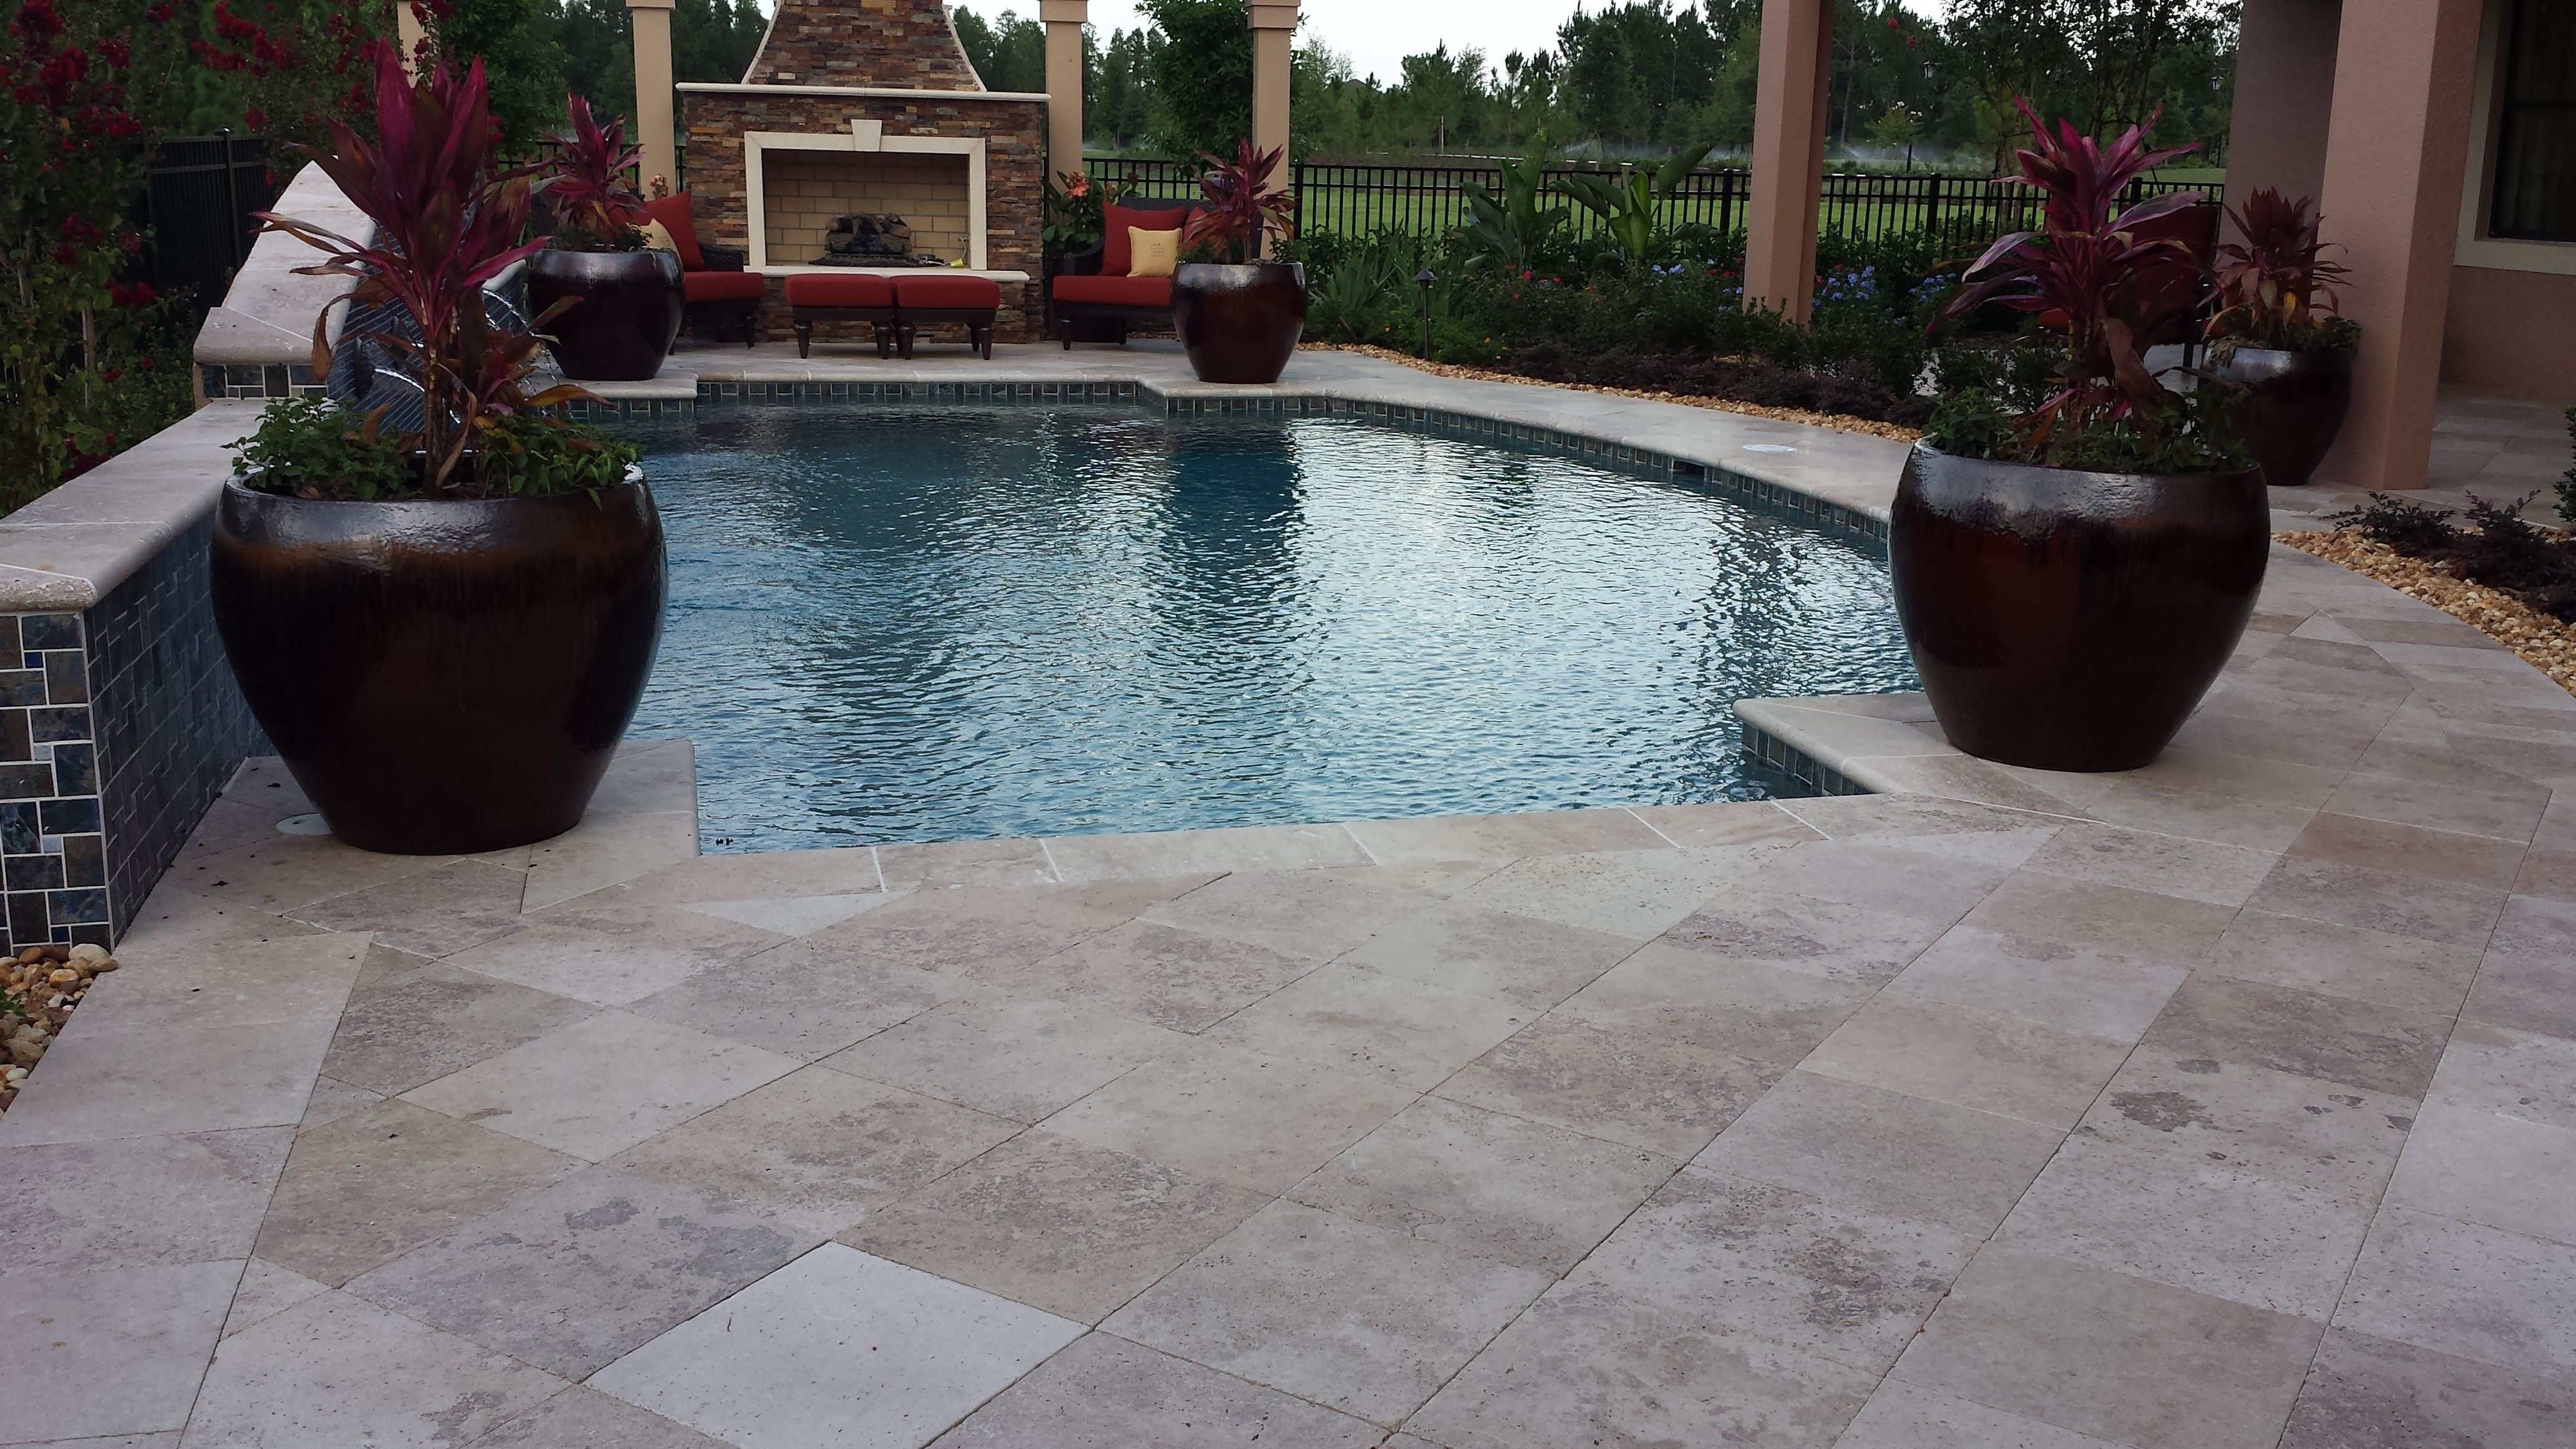 16x16 Noce Roman Gm Tumbled Travertine Pool Deck Pavers And Pool Coping For More Info Please Visit Www Trav Travertine Pool Travertine Pool Decking Travertine